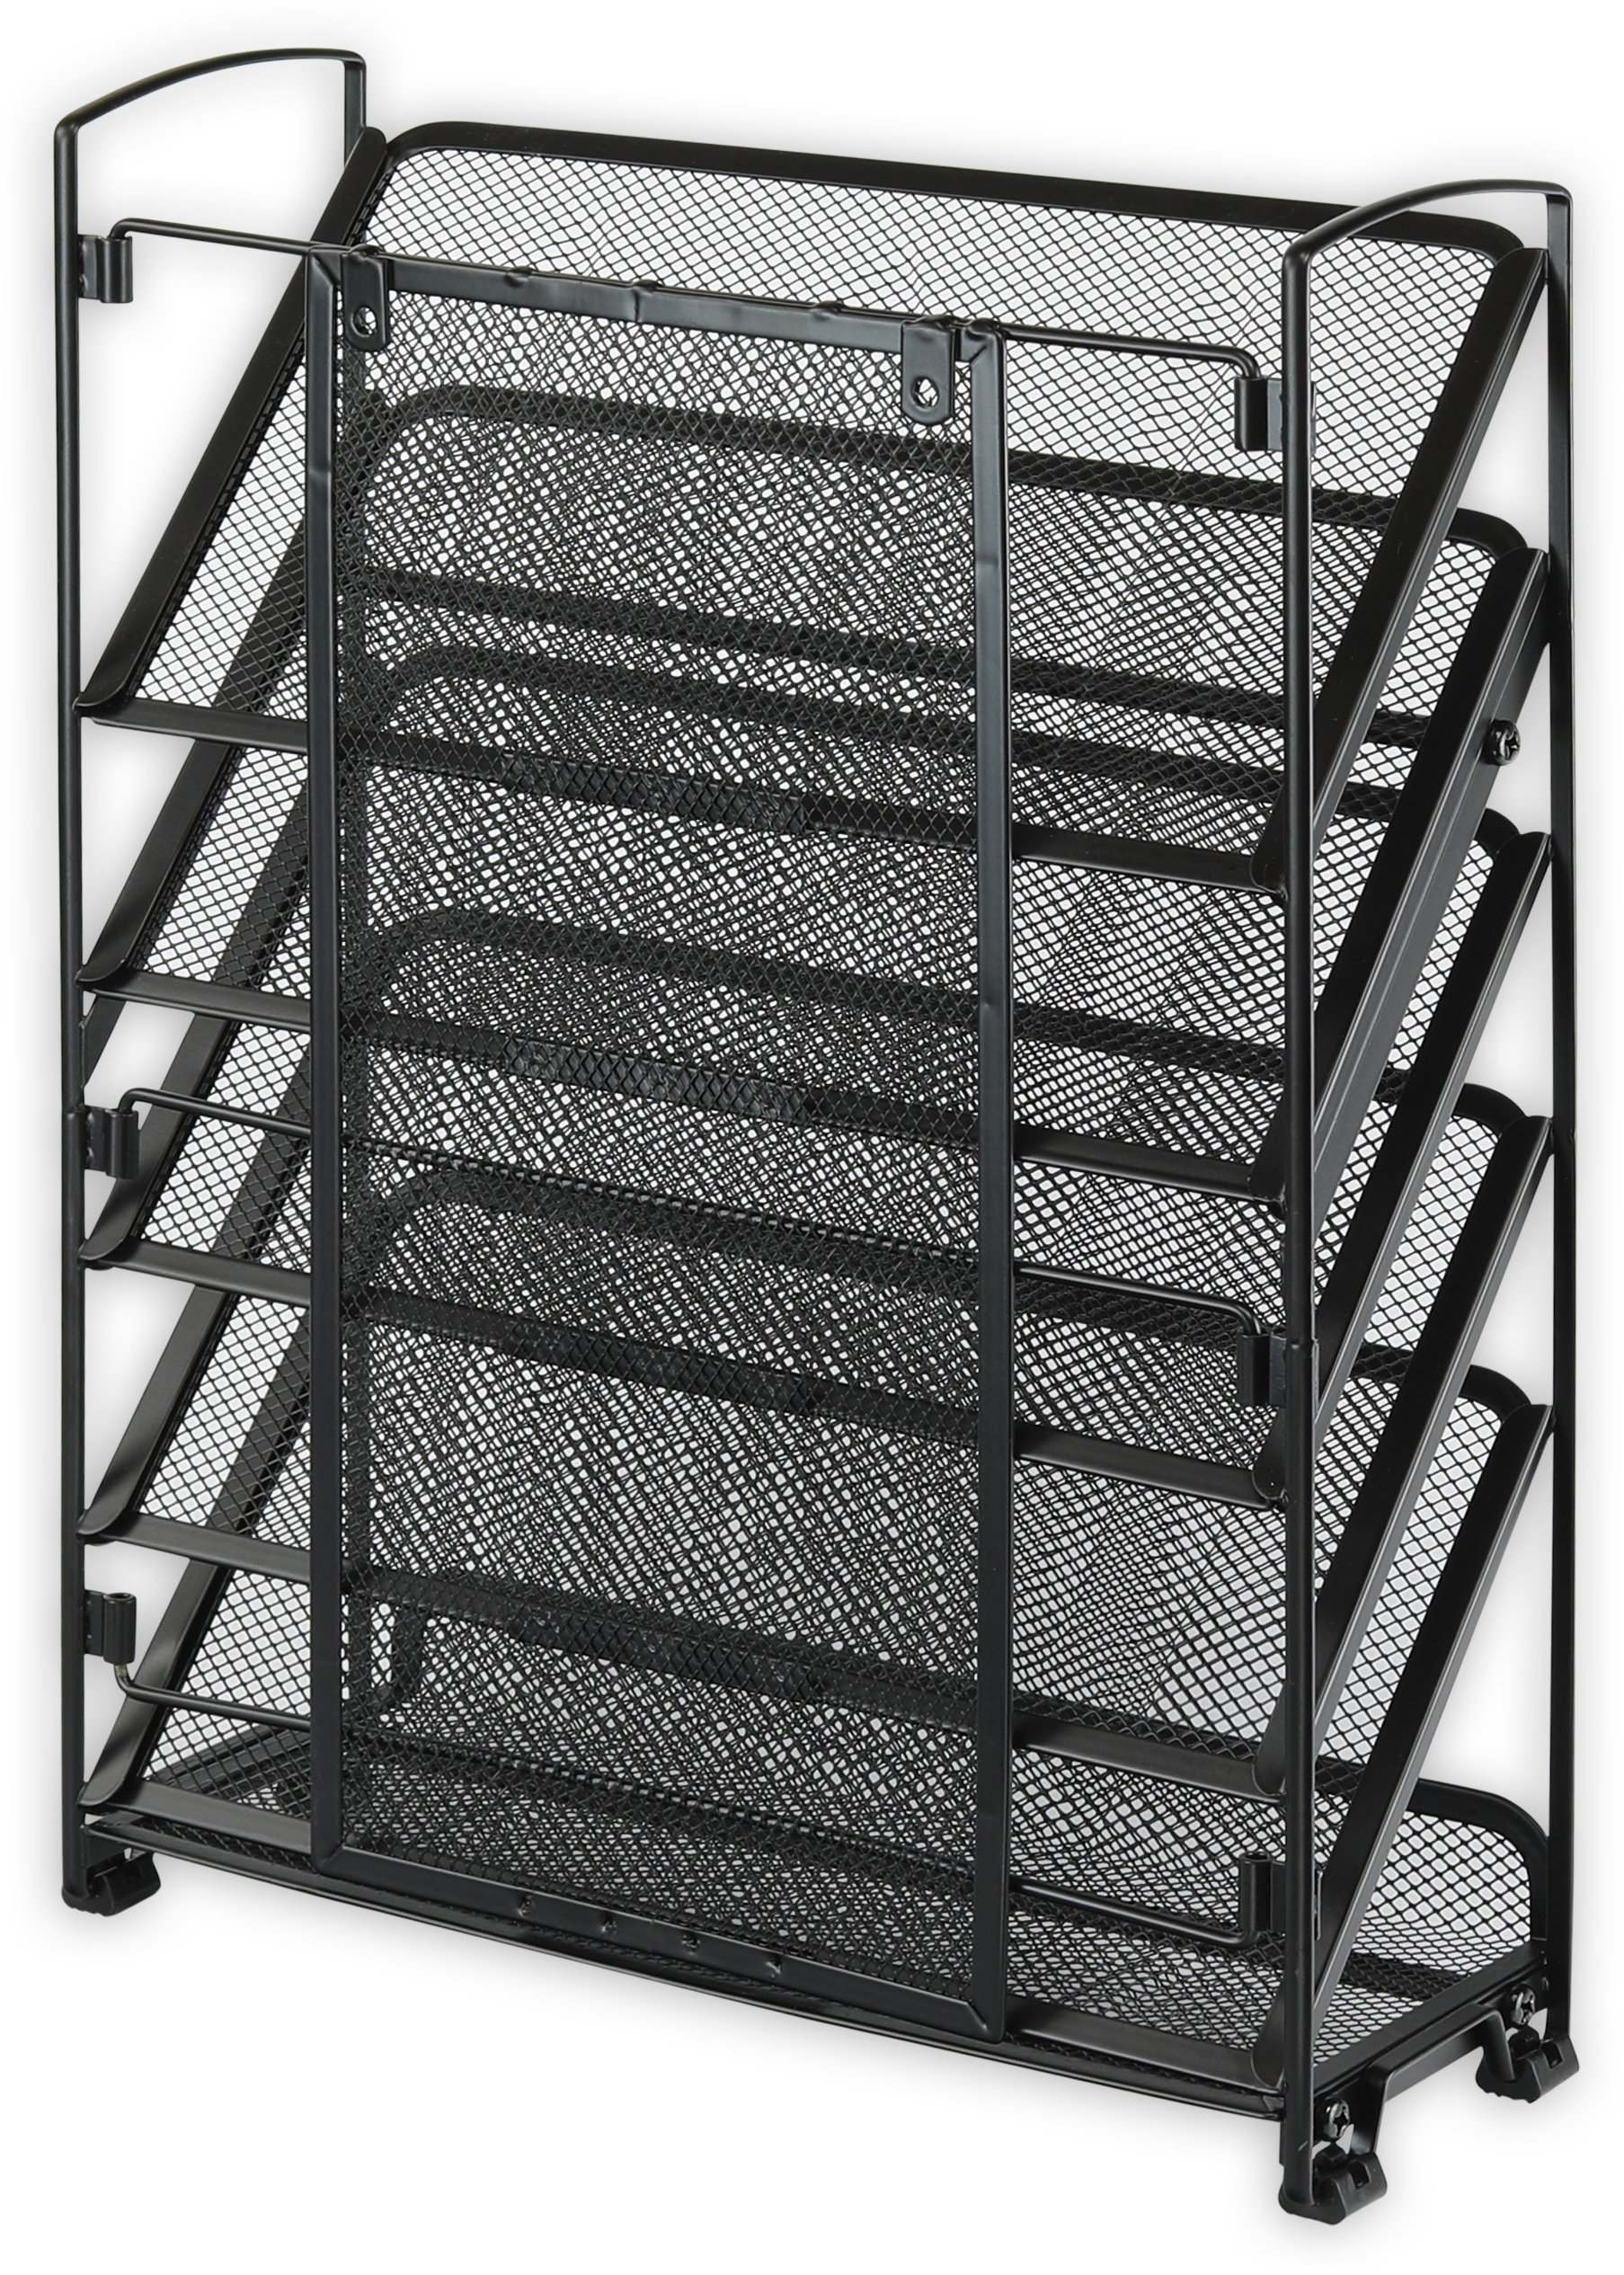 SimpleHouseware 6 Tier Wall Mount Document Letter Tray Organizer, Black by Simple Houseware (Image #5)